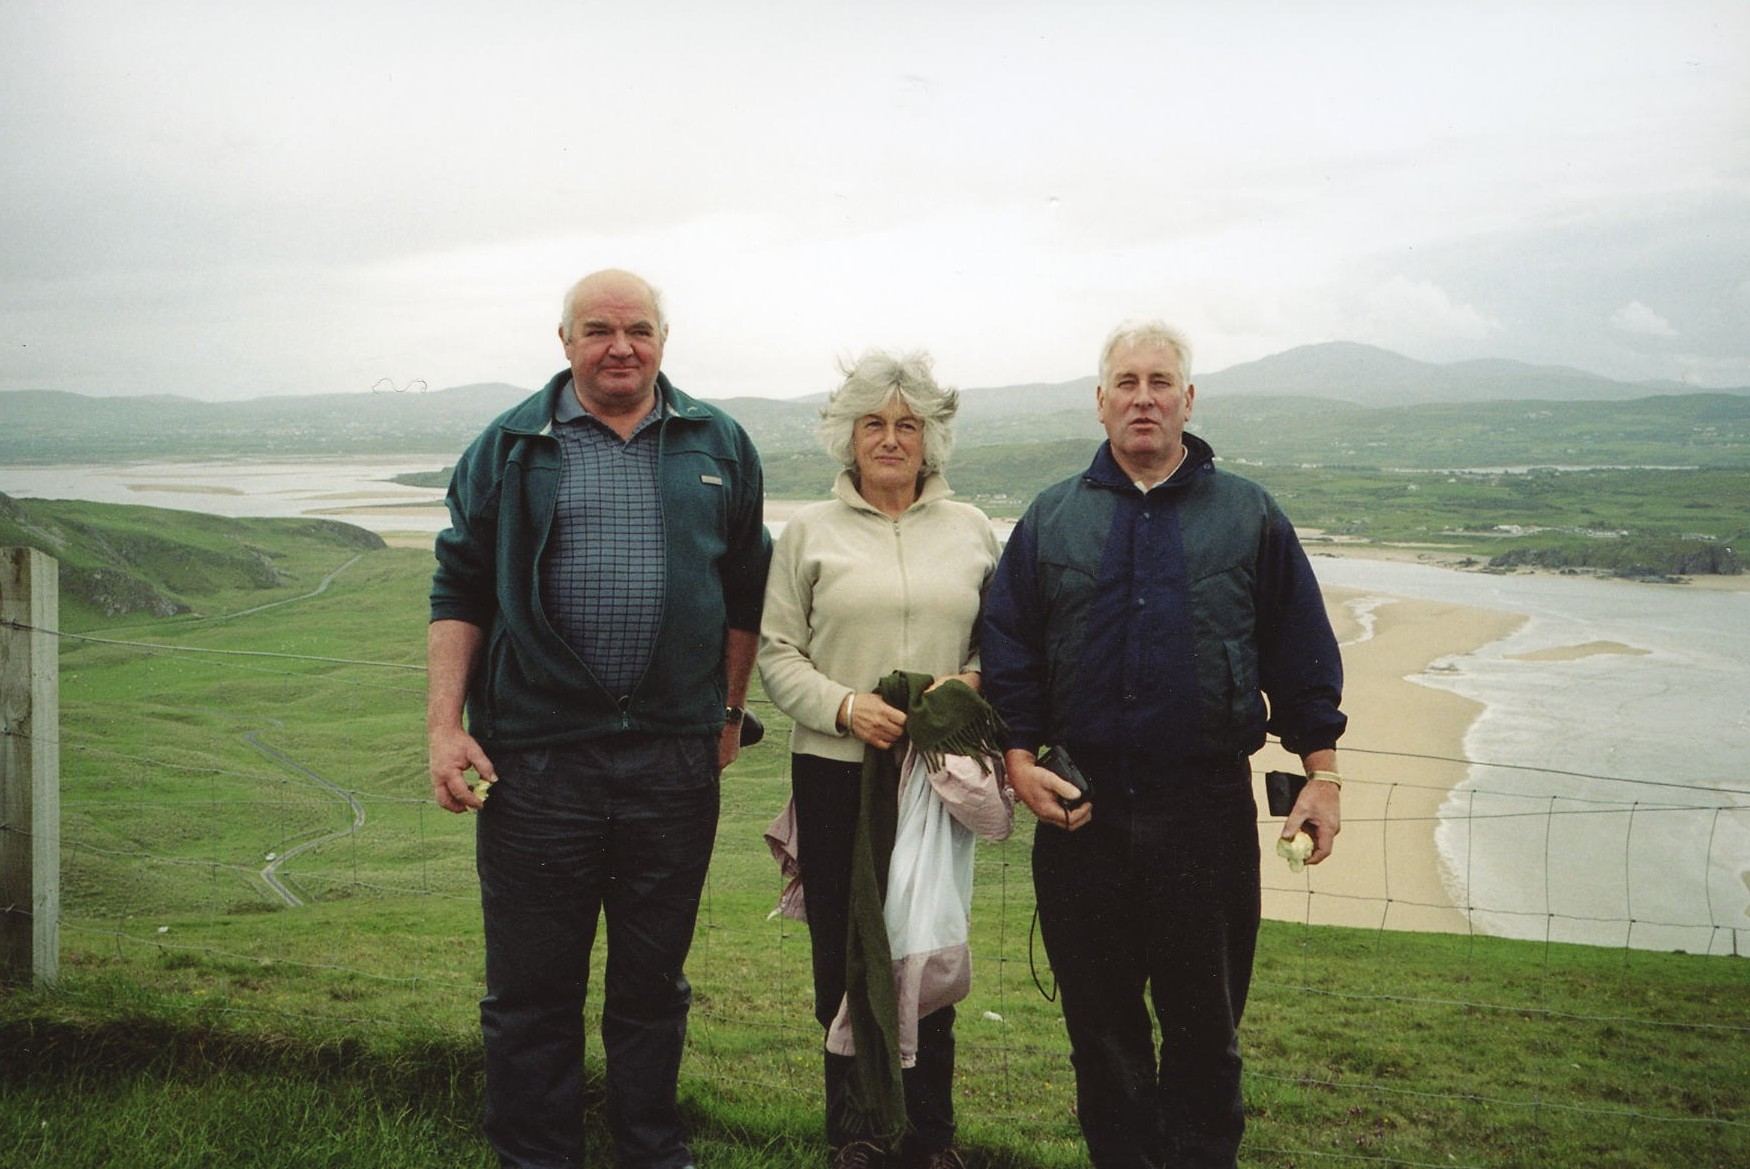 Ballyliffin, County Donegal